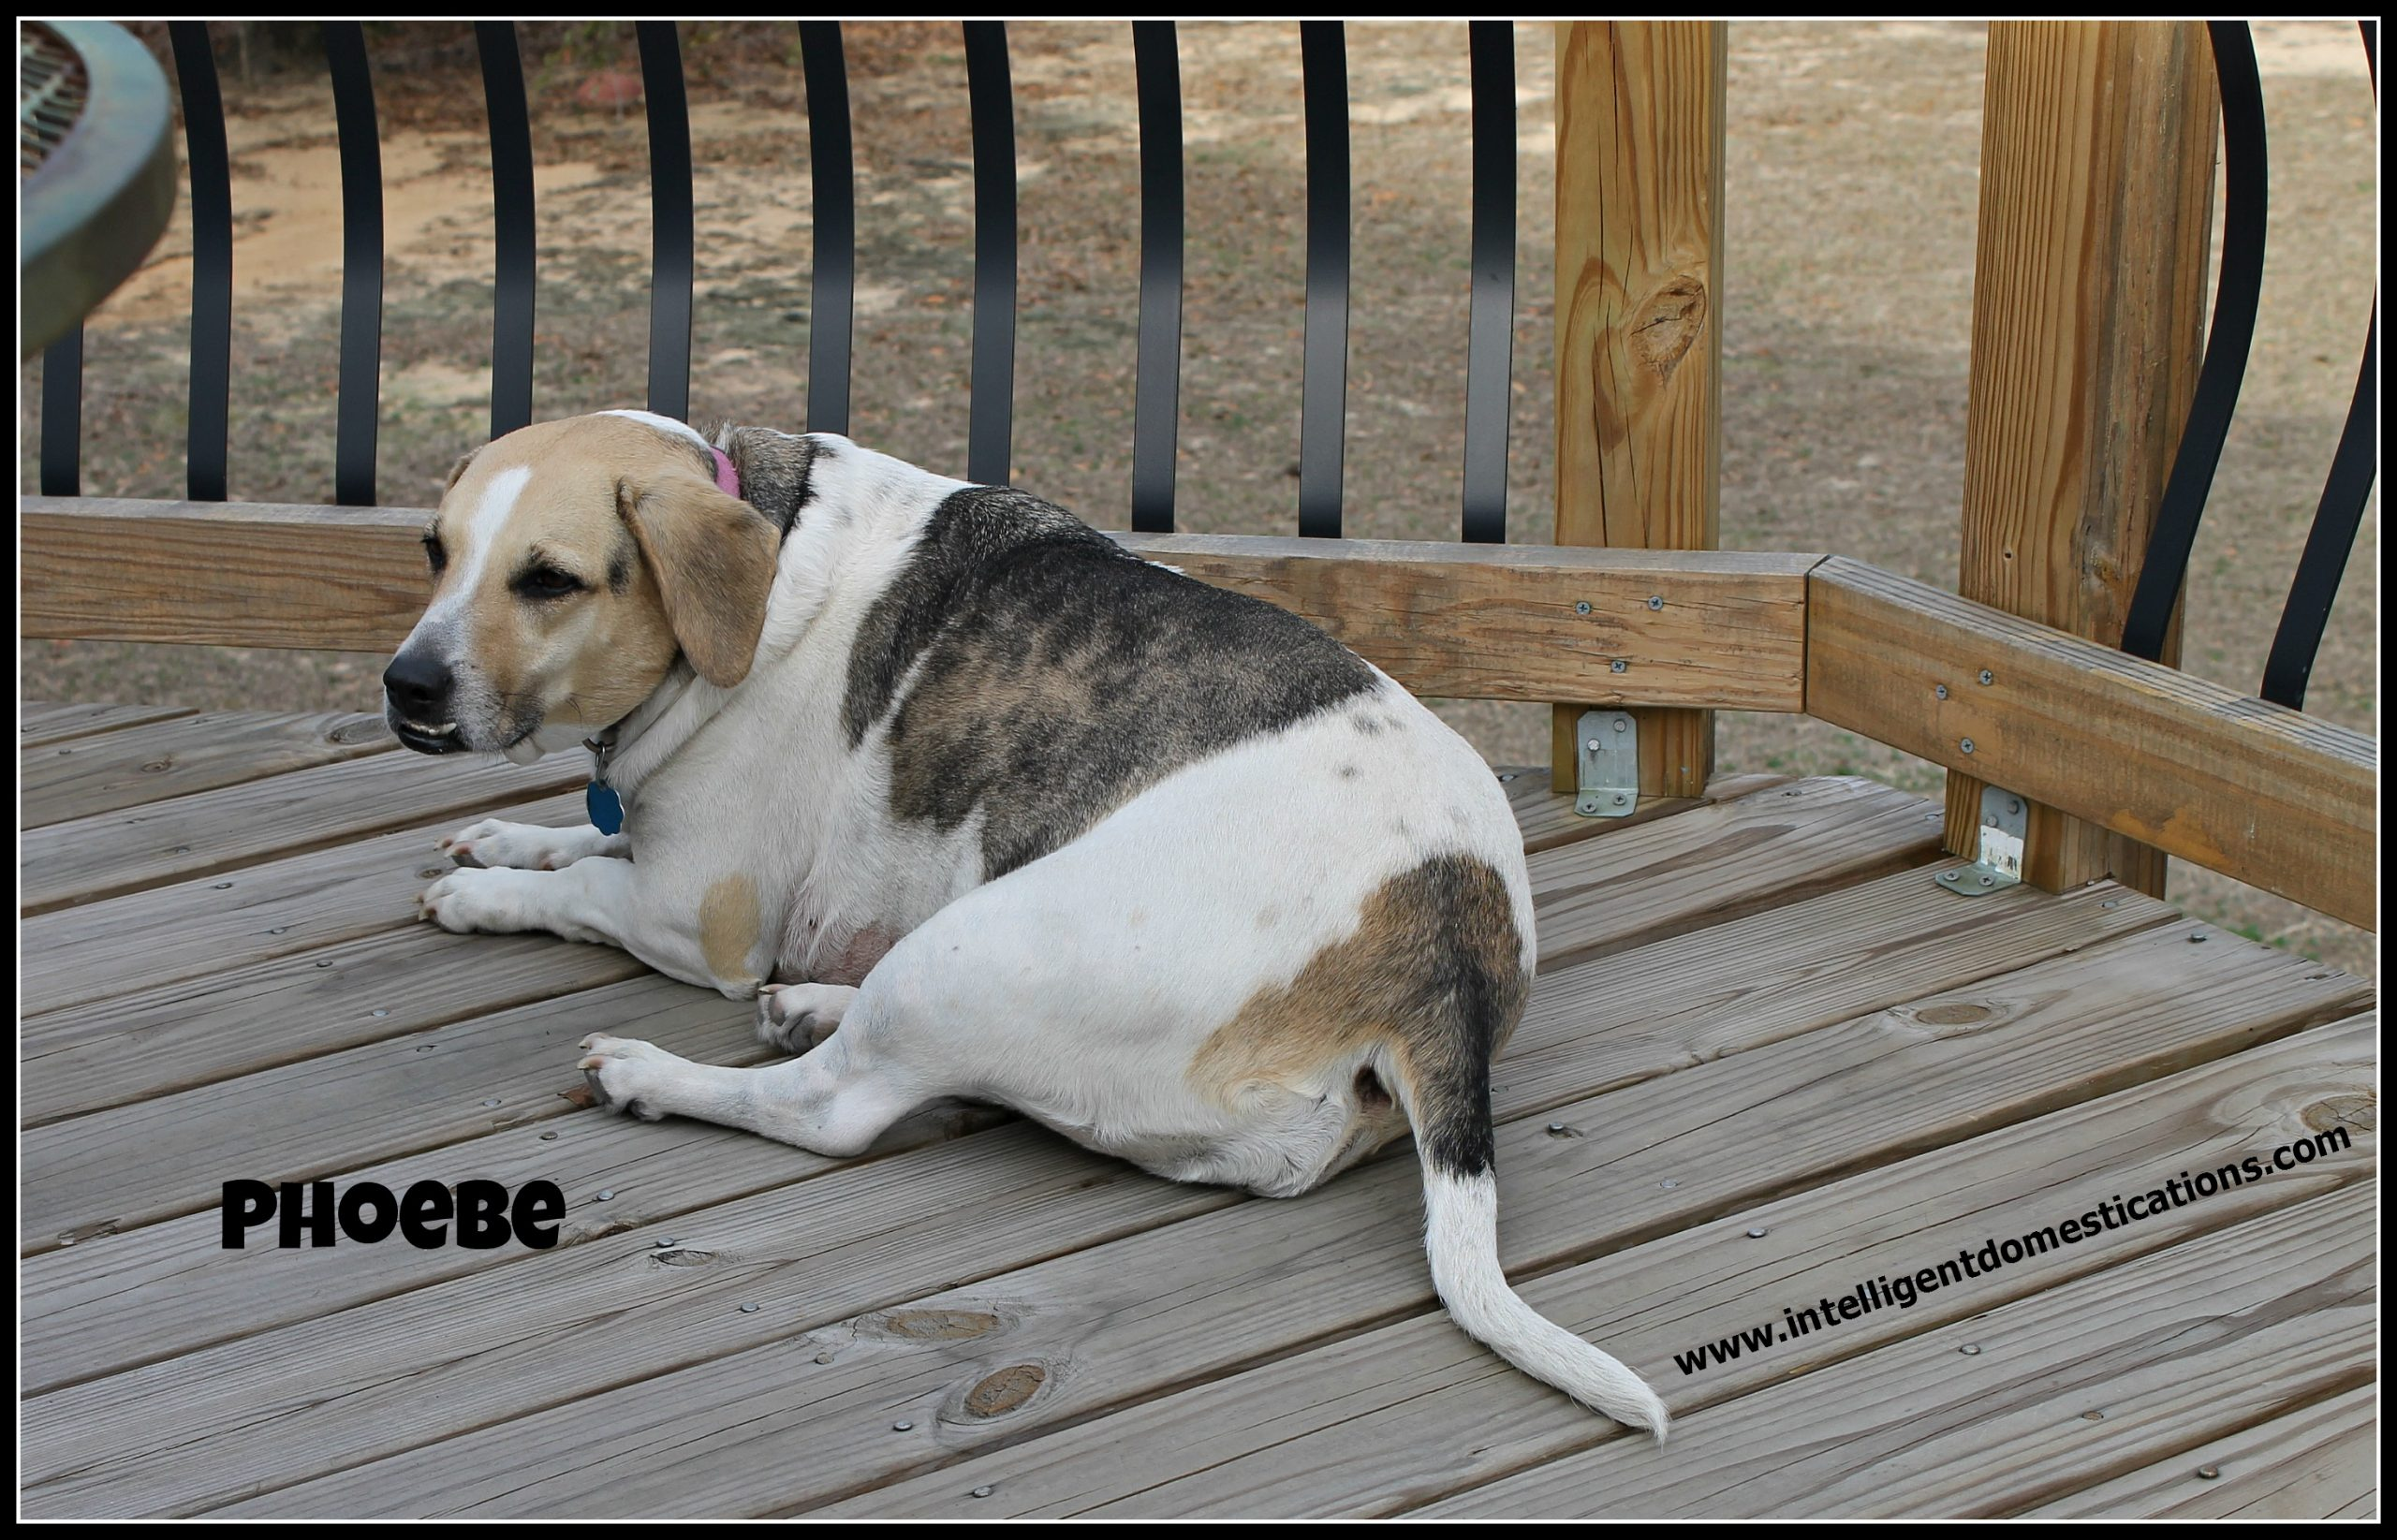 Canine Cancer: Phoebe's Story Part II